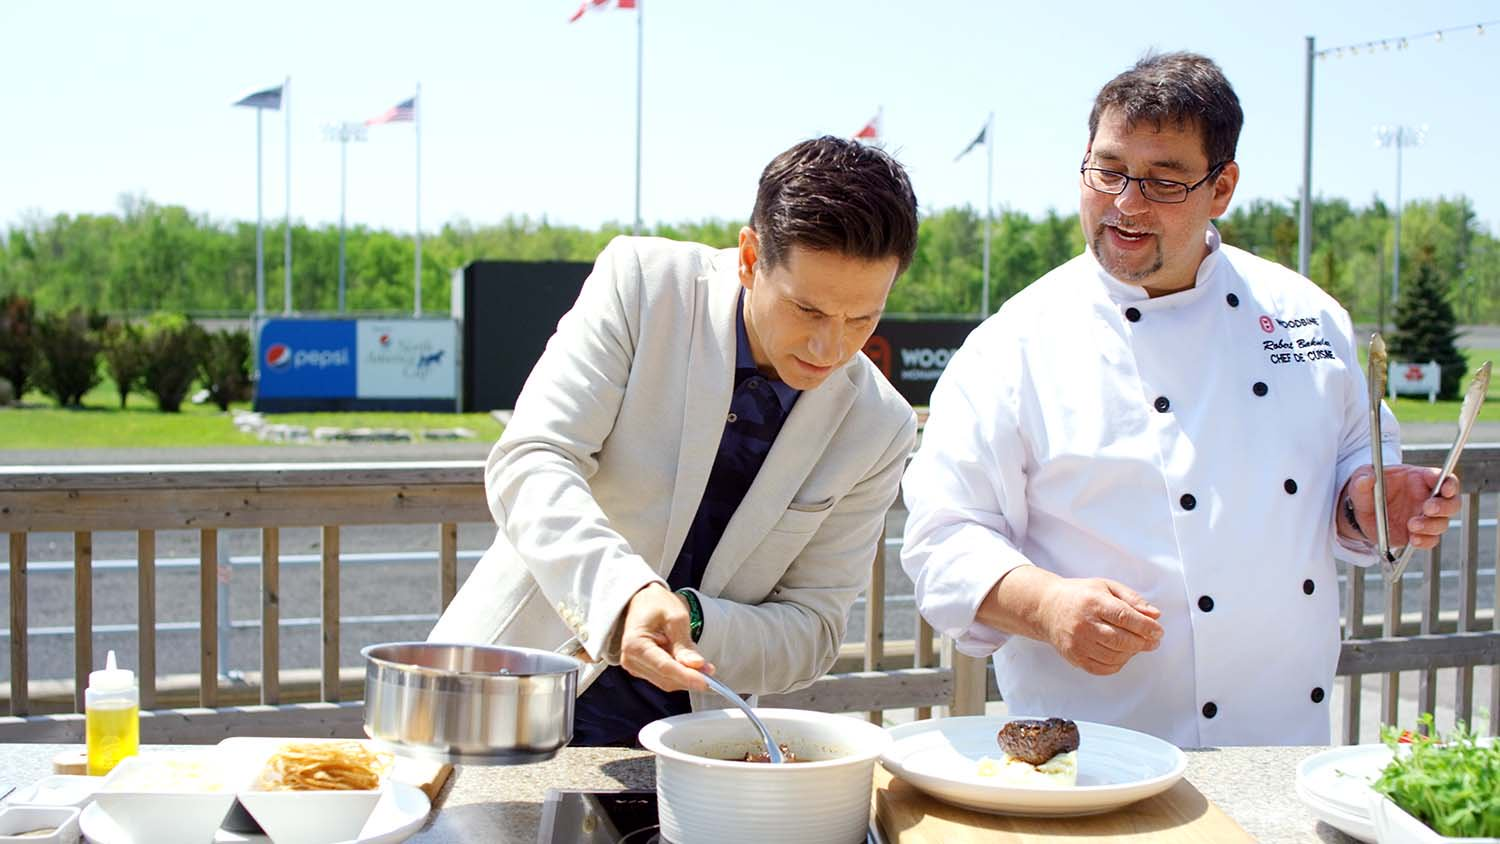 Rick Campanelli, Canadian television personality along-with Chef Rob at Mohawk Harvest Kitchen at Woodbine Mohawk Park